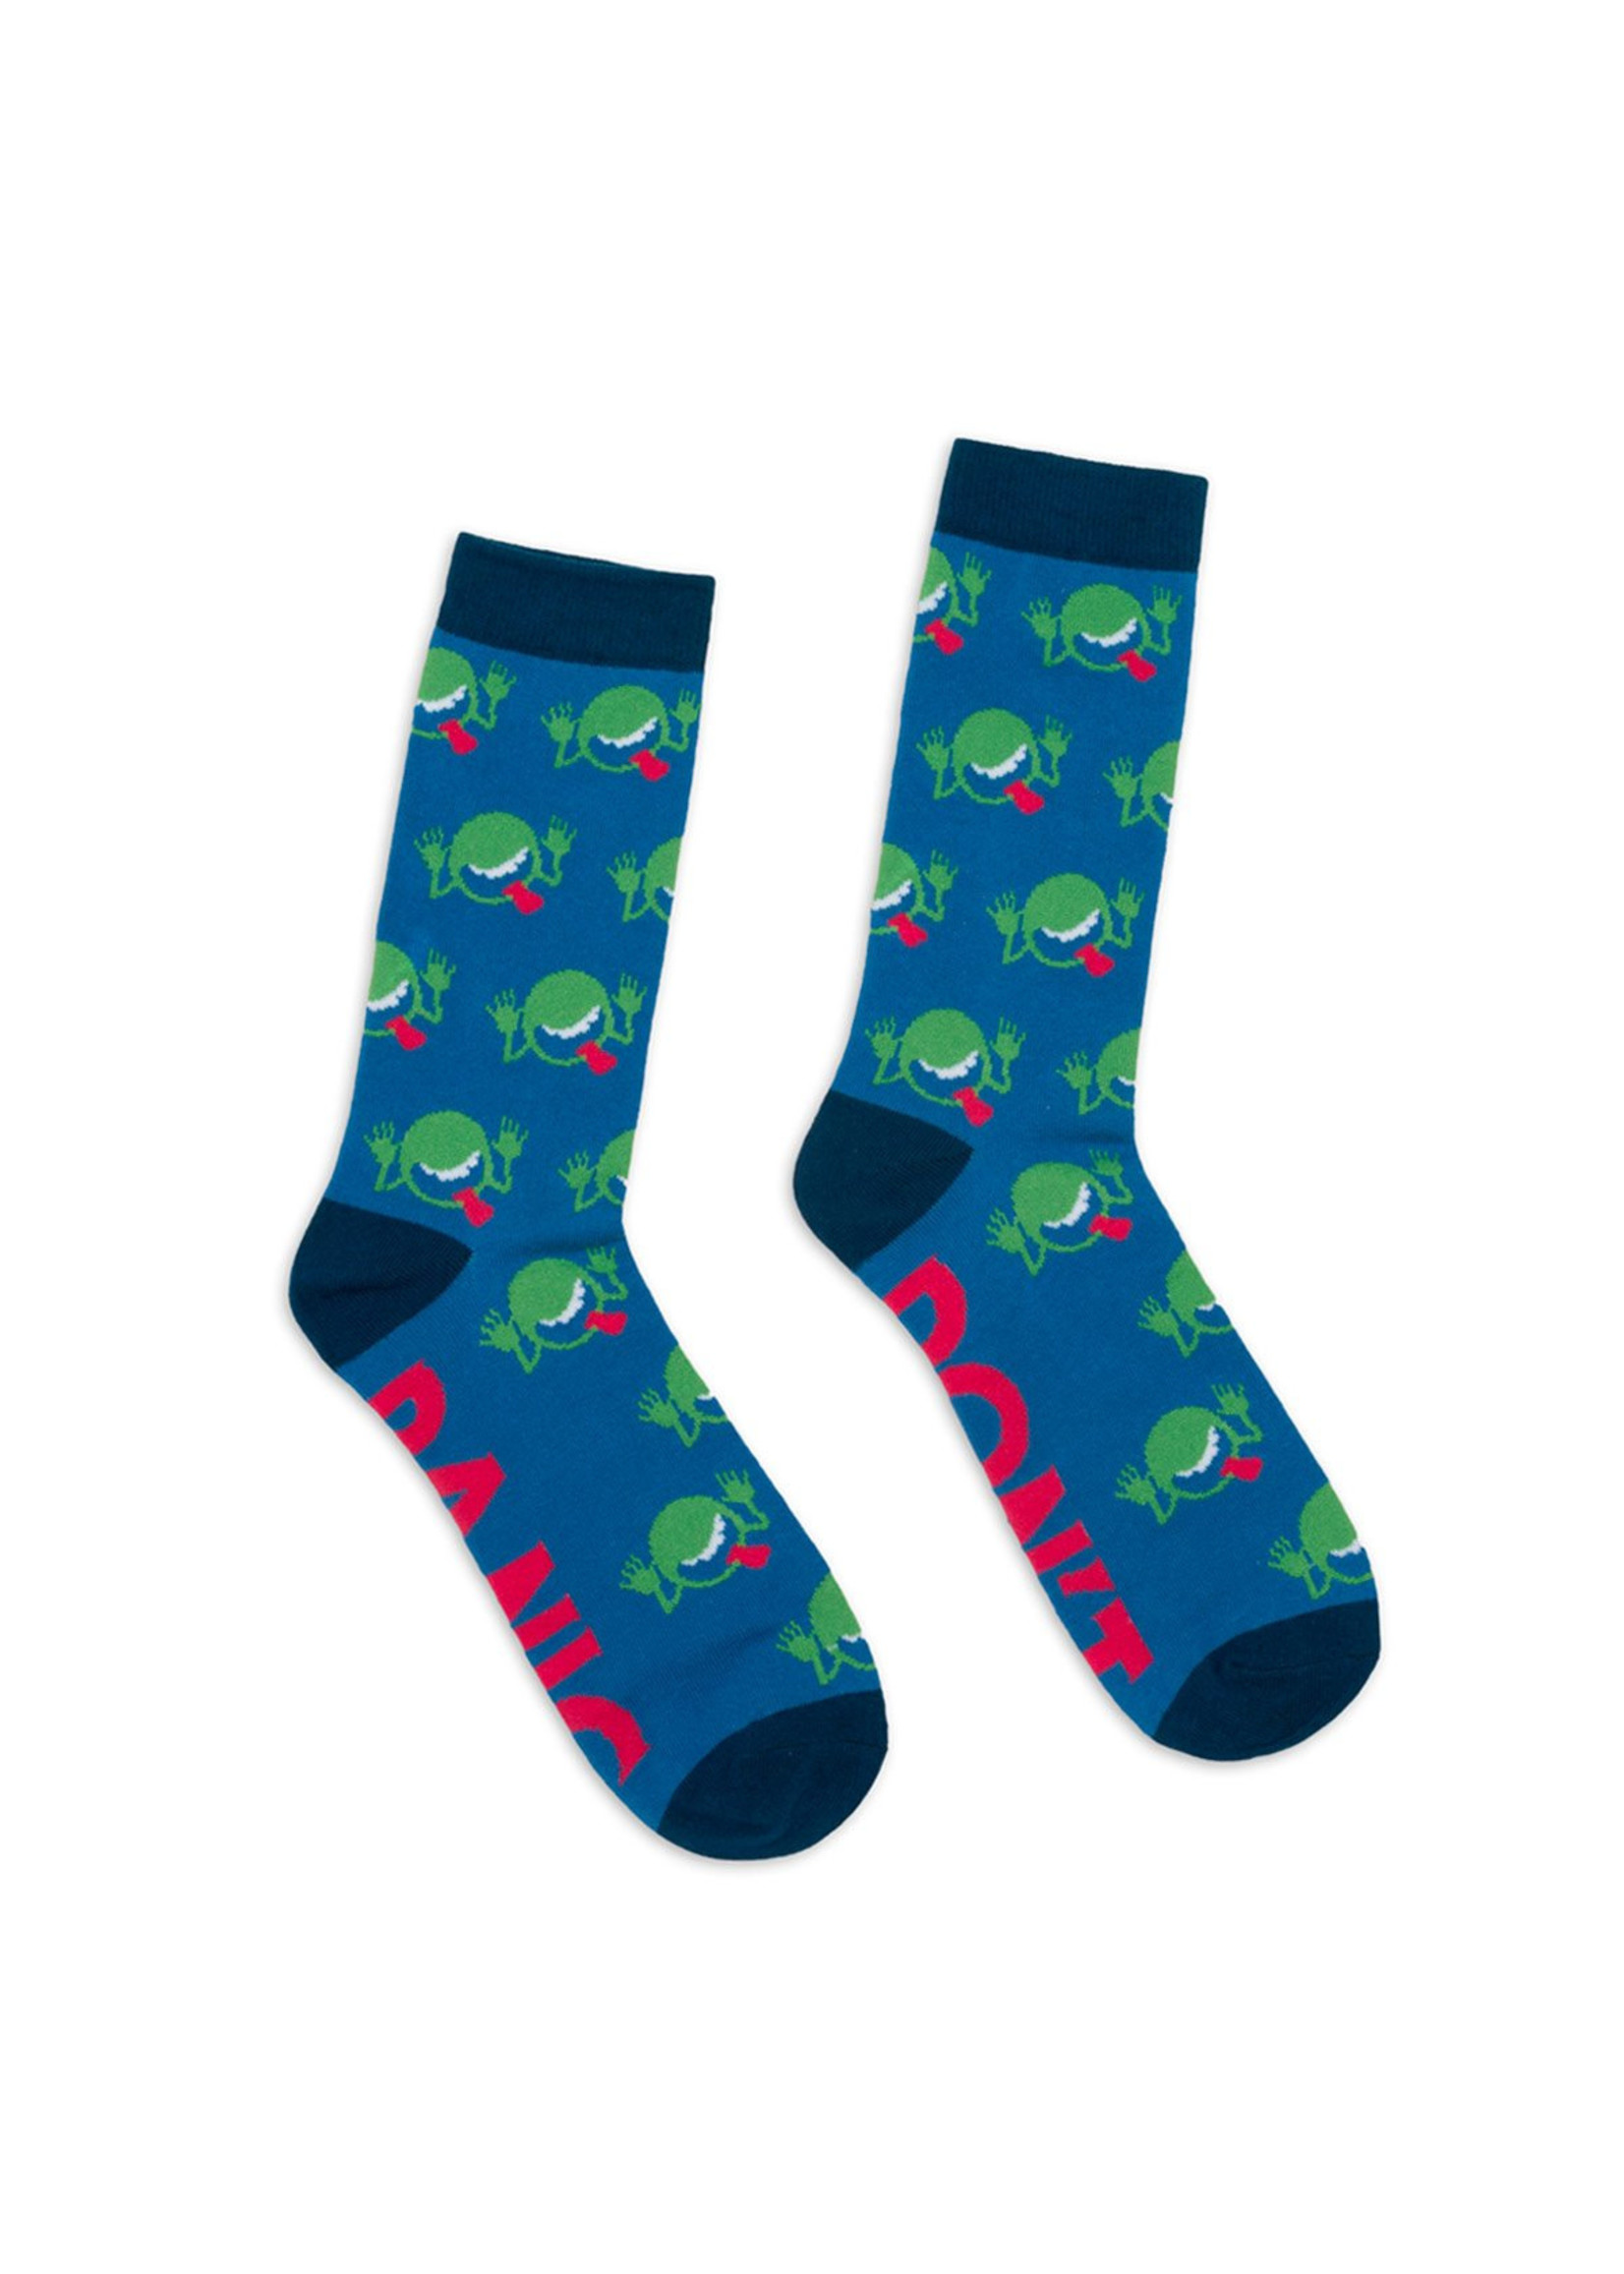 Out of Print The Hitchhiker's Guide to the Galaxy Socks - Adult